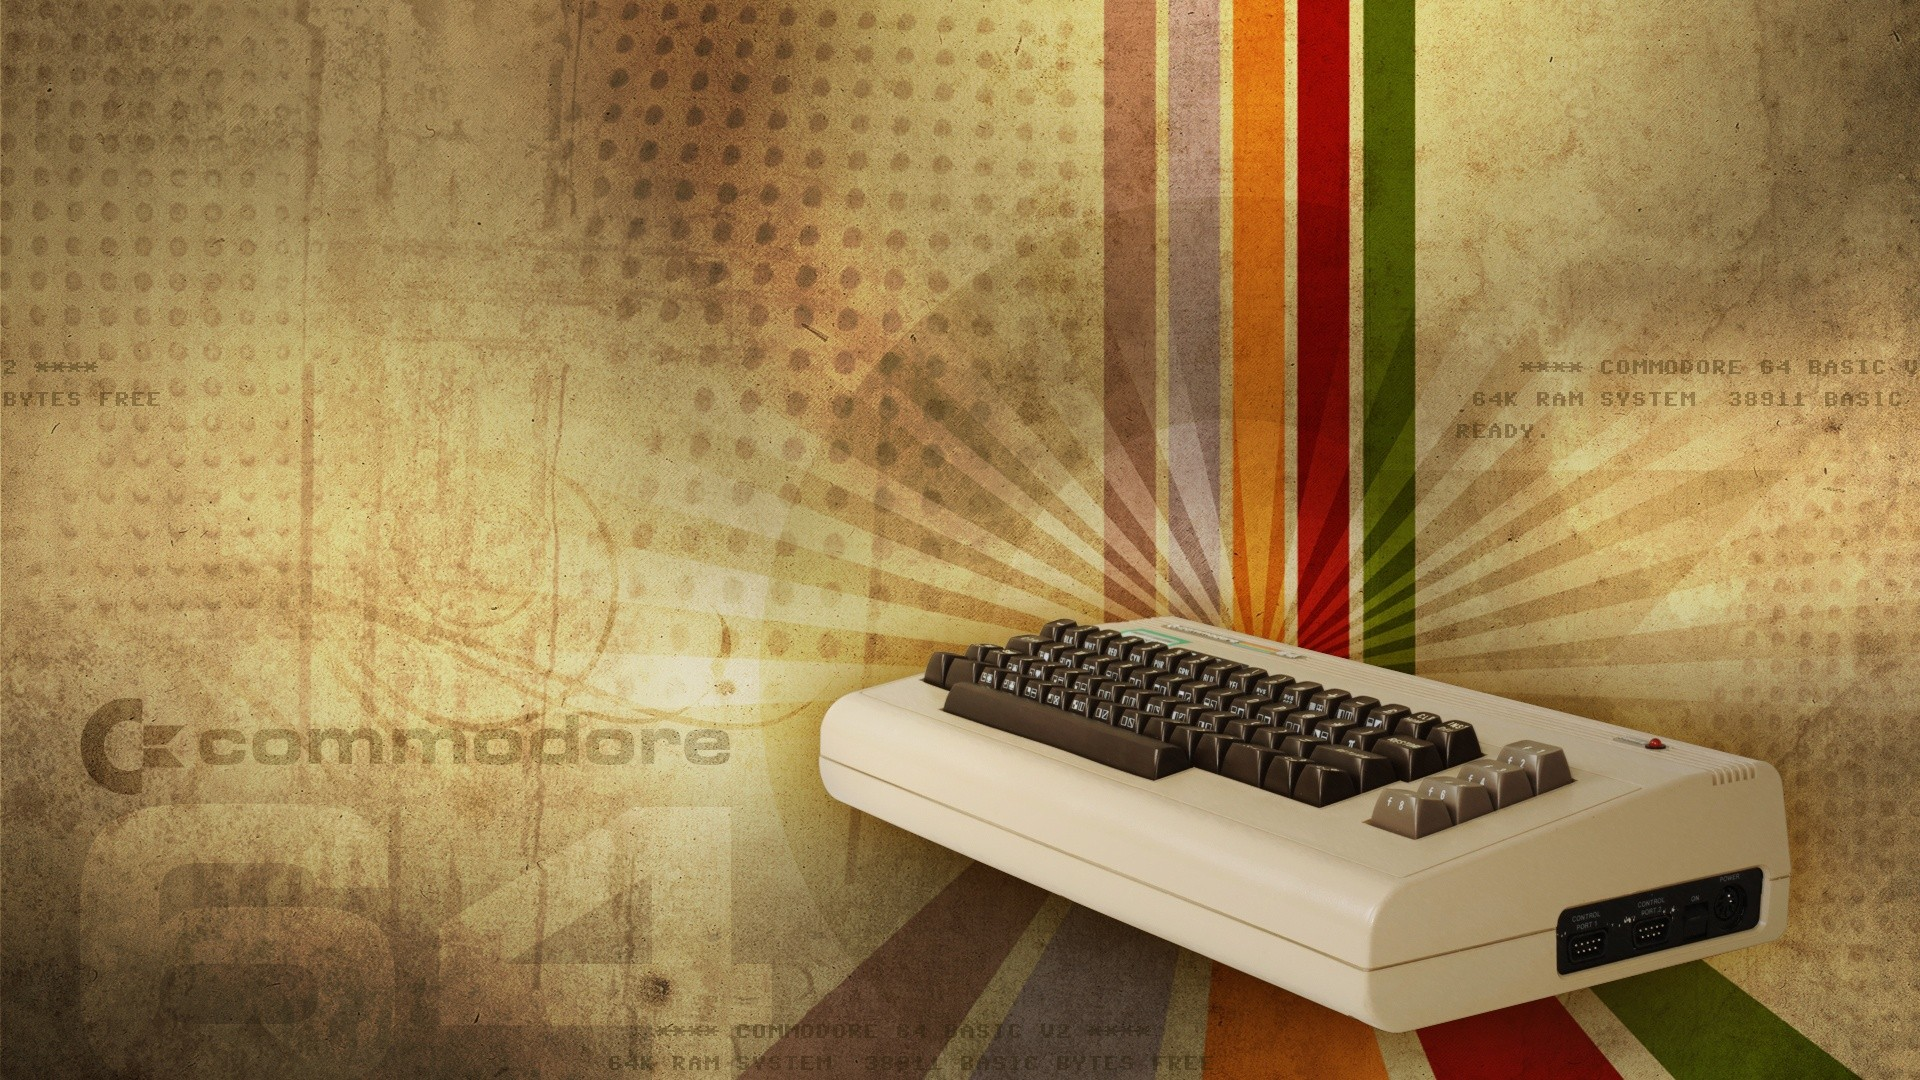 Pc Wallpaper 3d Hd Full Size Retro Games Commodore 64 Keyboards Vintage Consoles